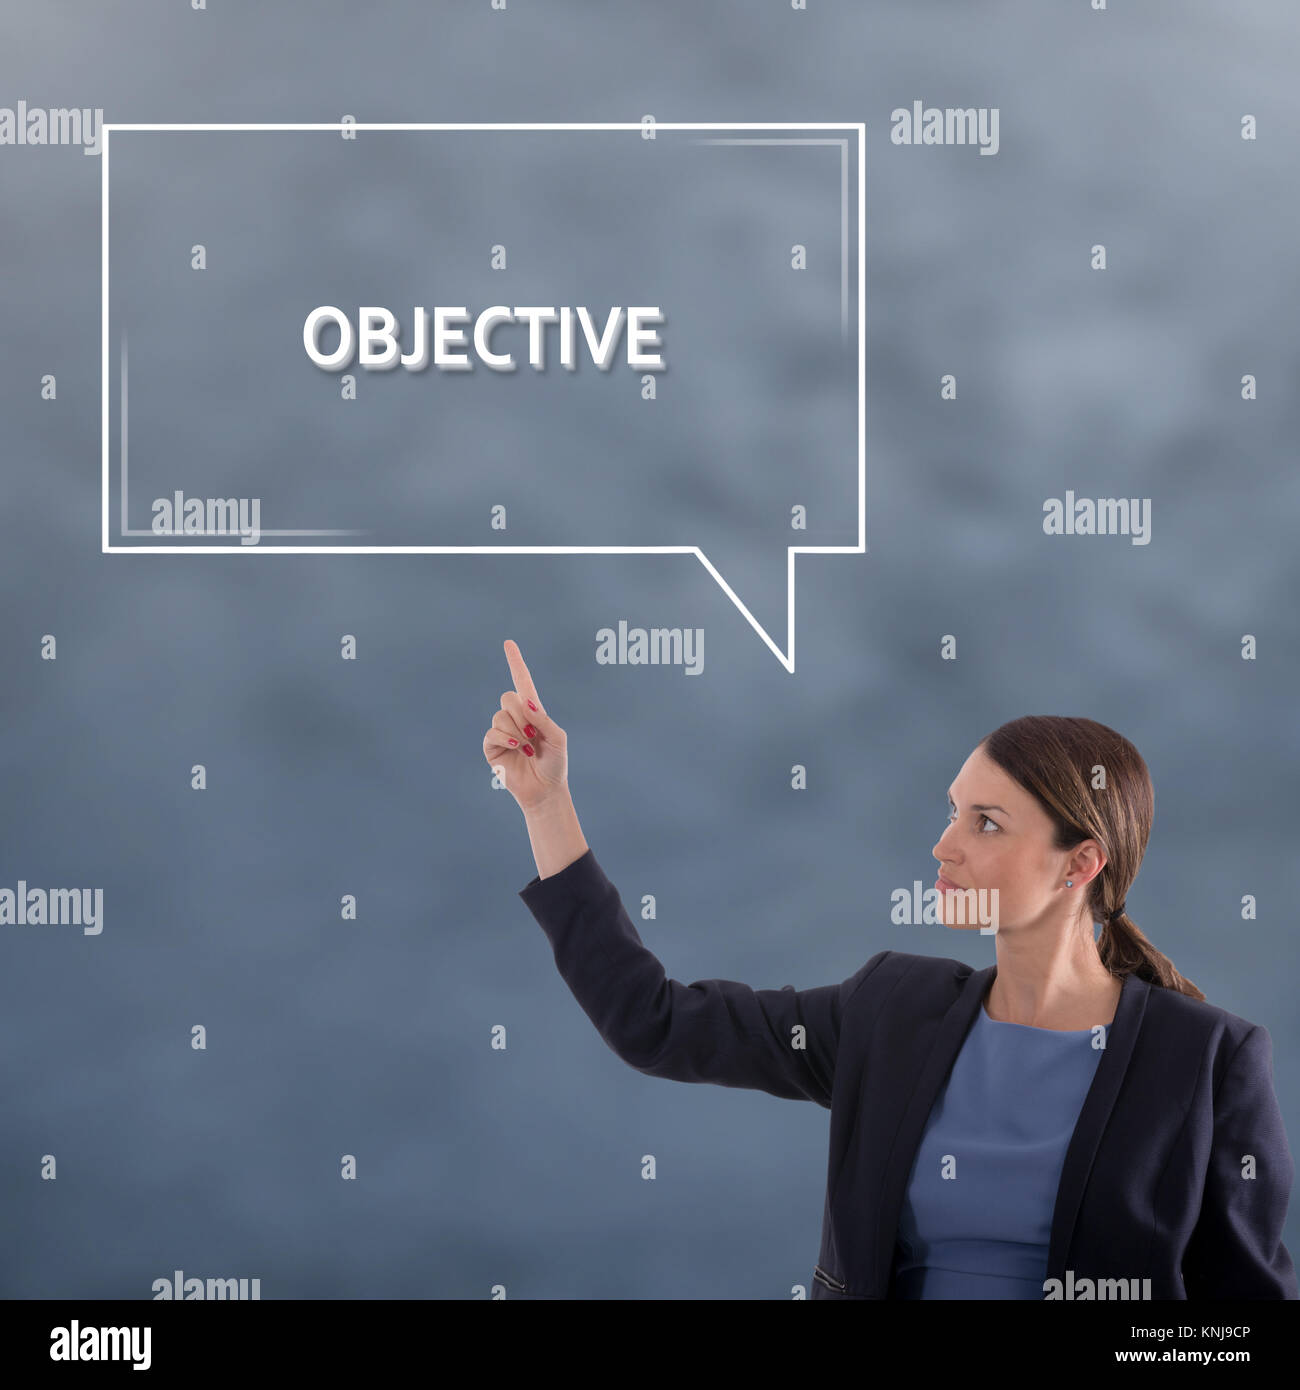 OBJECTIVE Business Concept. Business Woman Graphic Concept - Stock Image